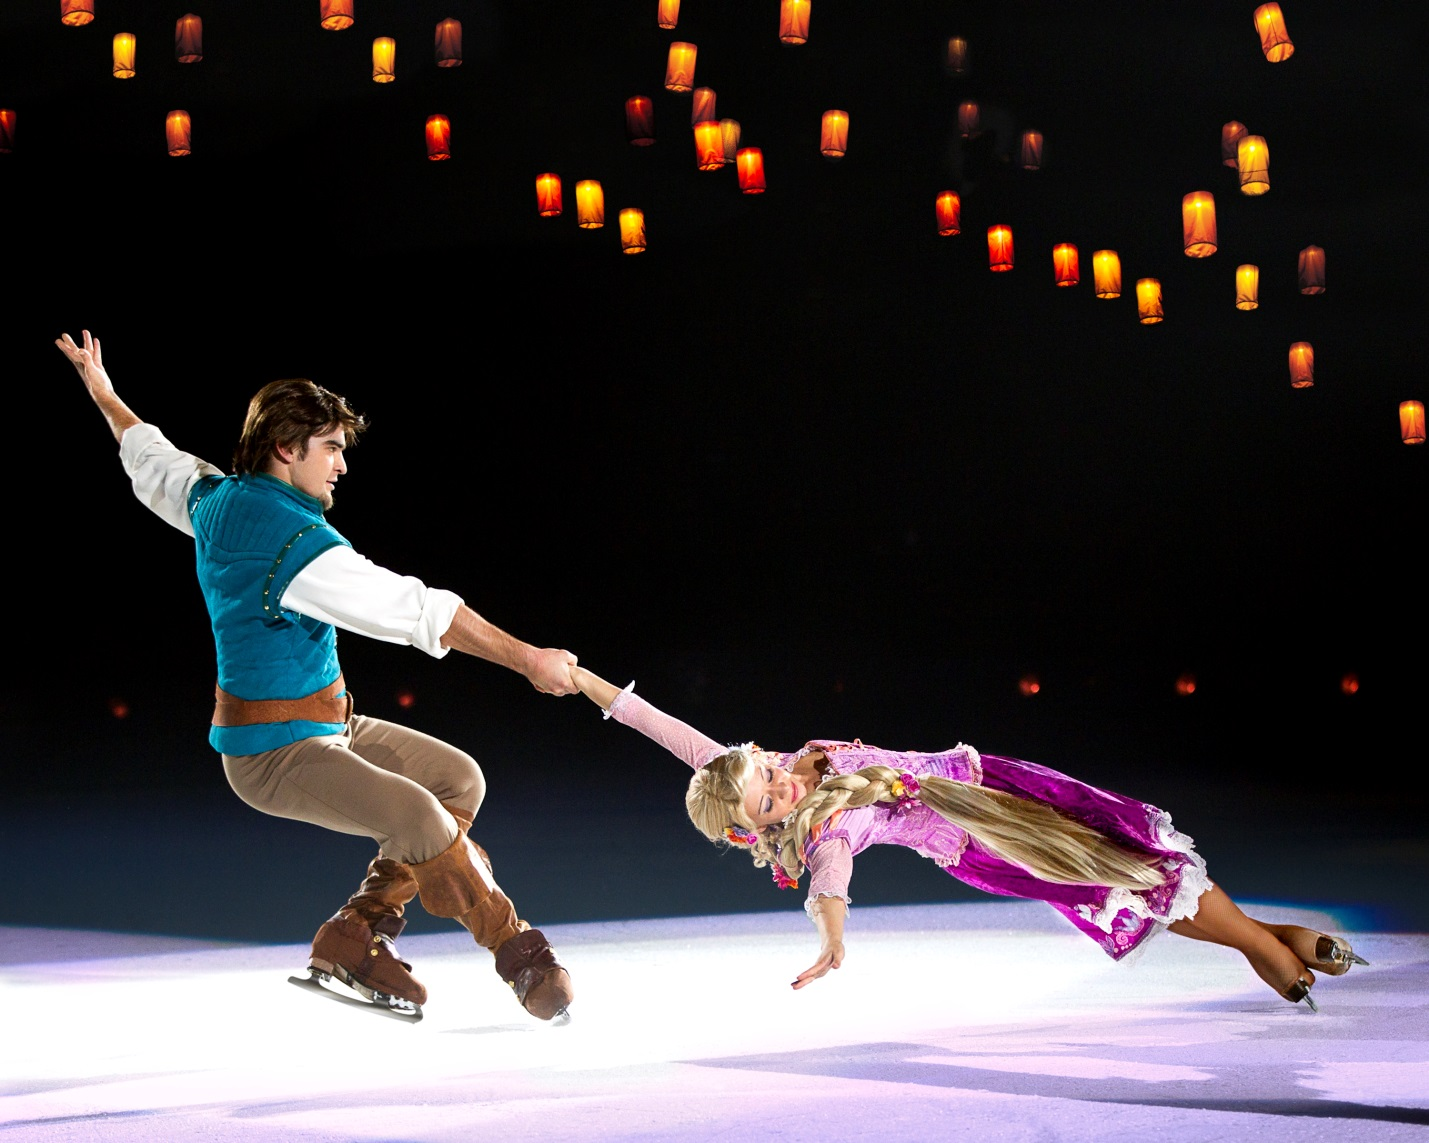 RAPUNZEL. Rapunzel and Flynn Rider of Disney's 'Rapunzel' are brought to life in Disney on Ice. Photo courtesy of FleishmanHillard